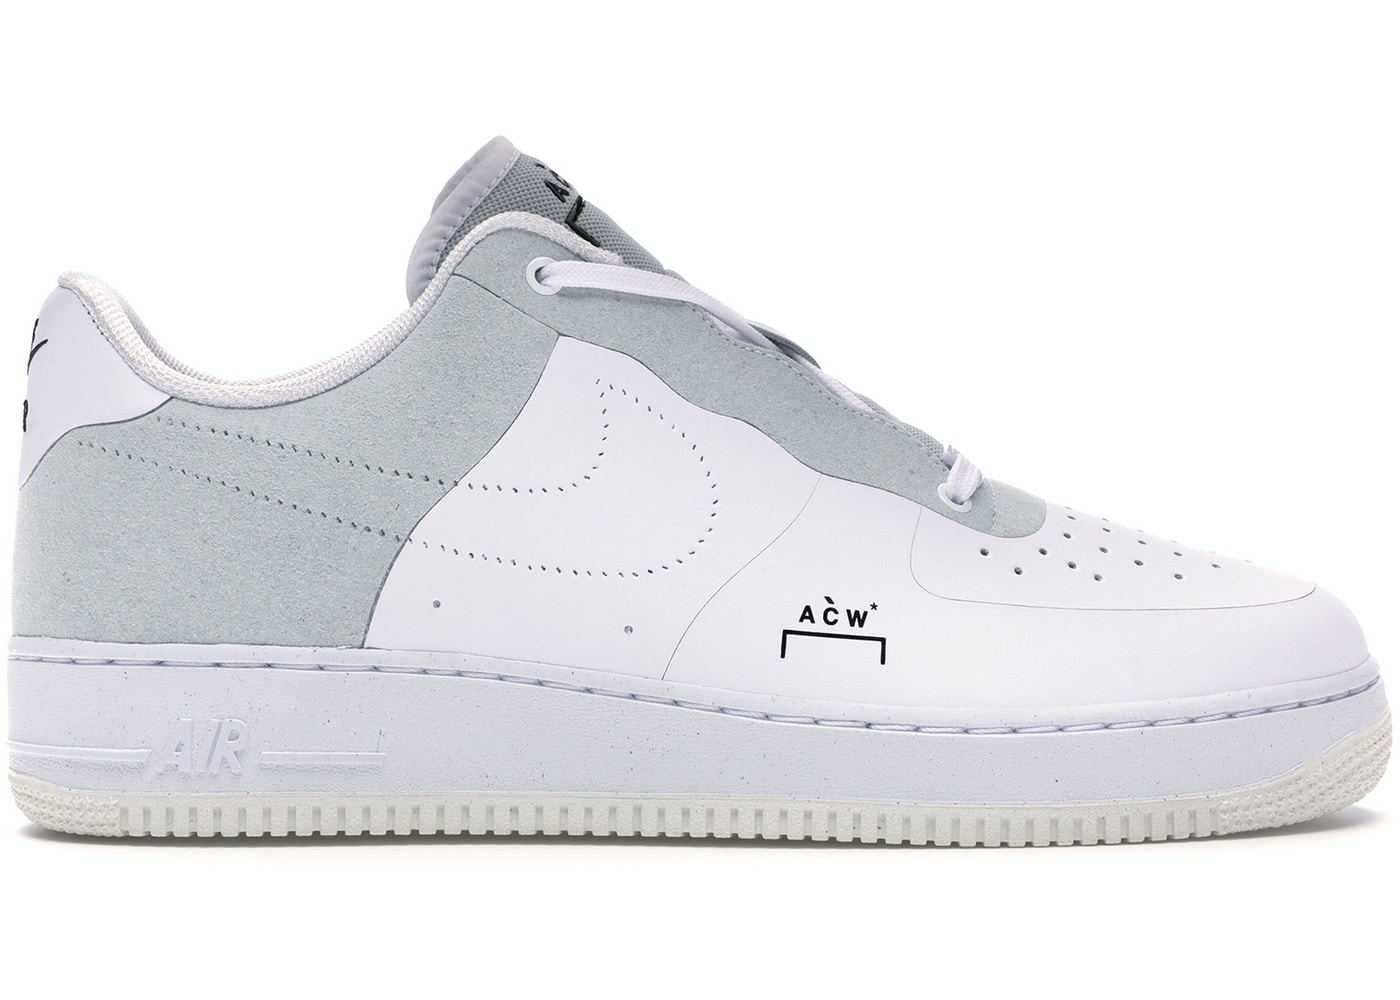 timeless design 48d11 72cdd Buy Nike Air Force 1 Shoes   Deadstock Sneakers